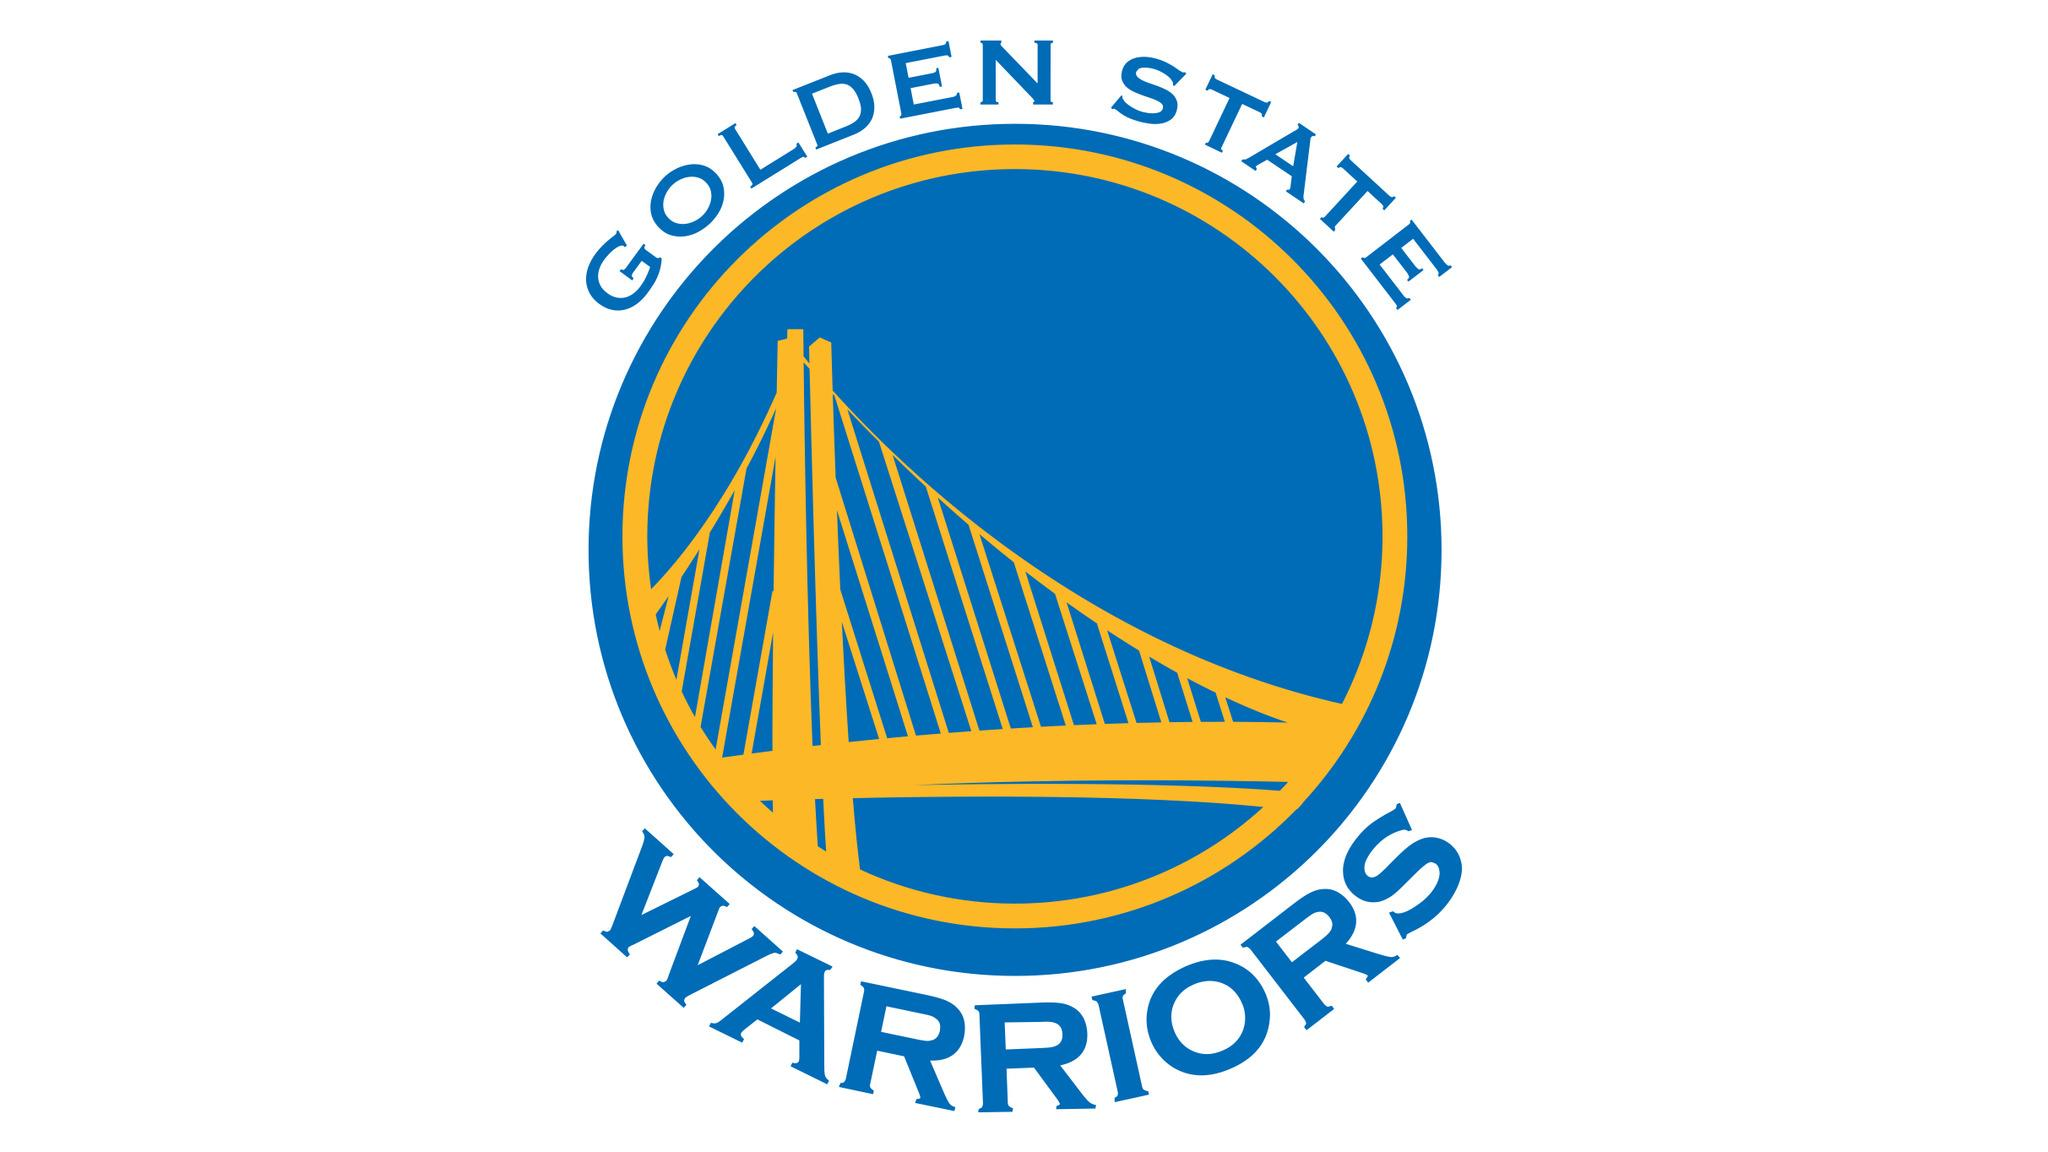 Golden State Warriors vs. Washington Wizards